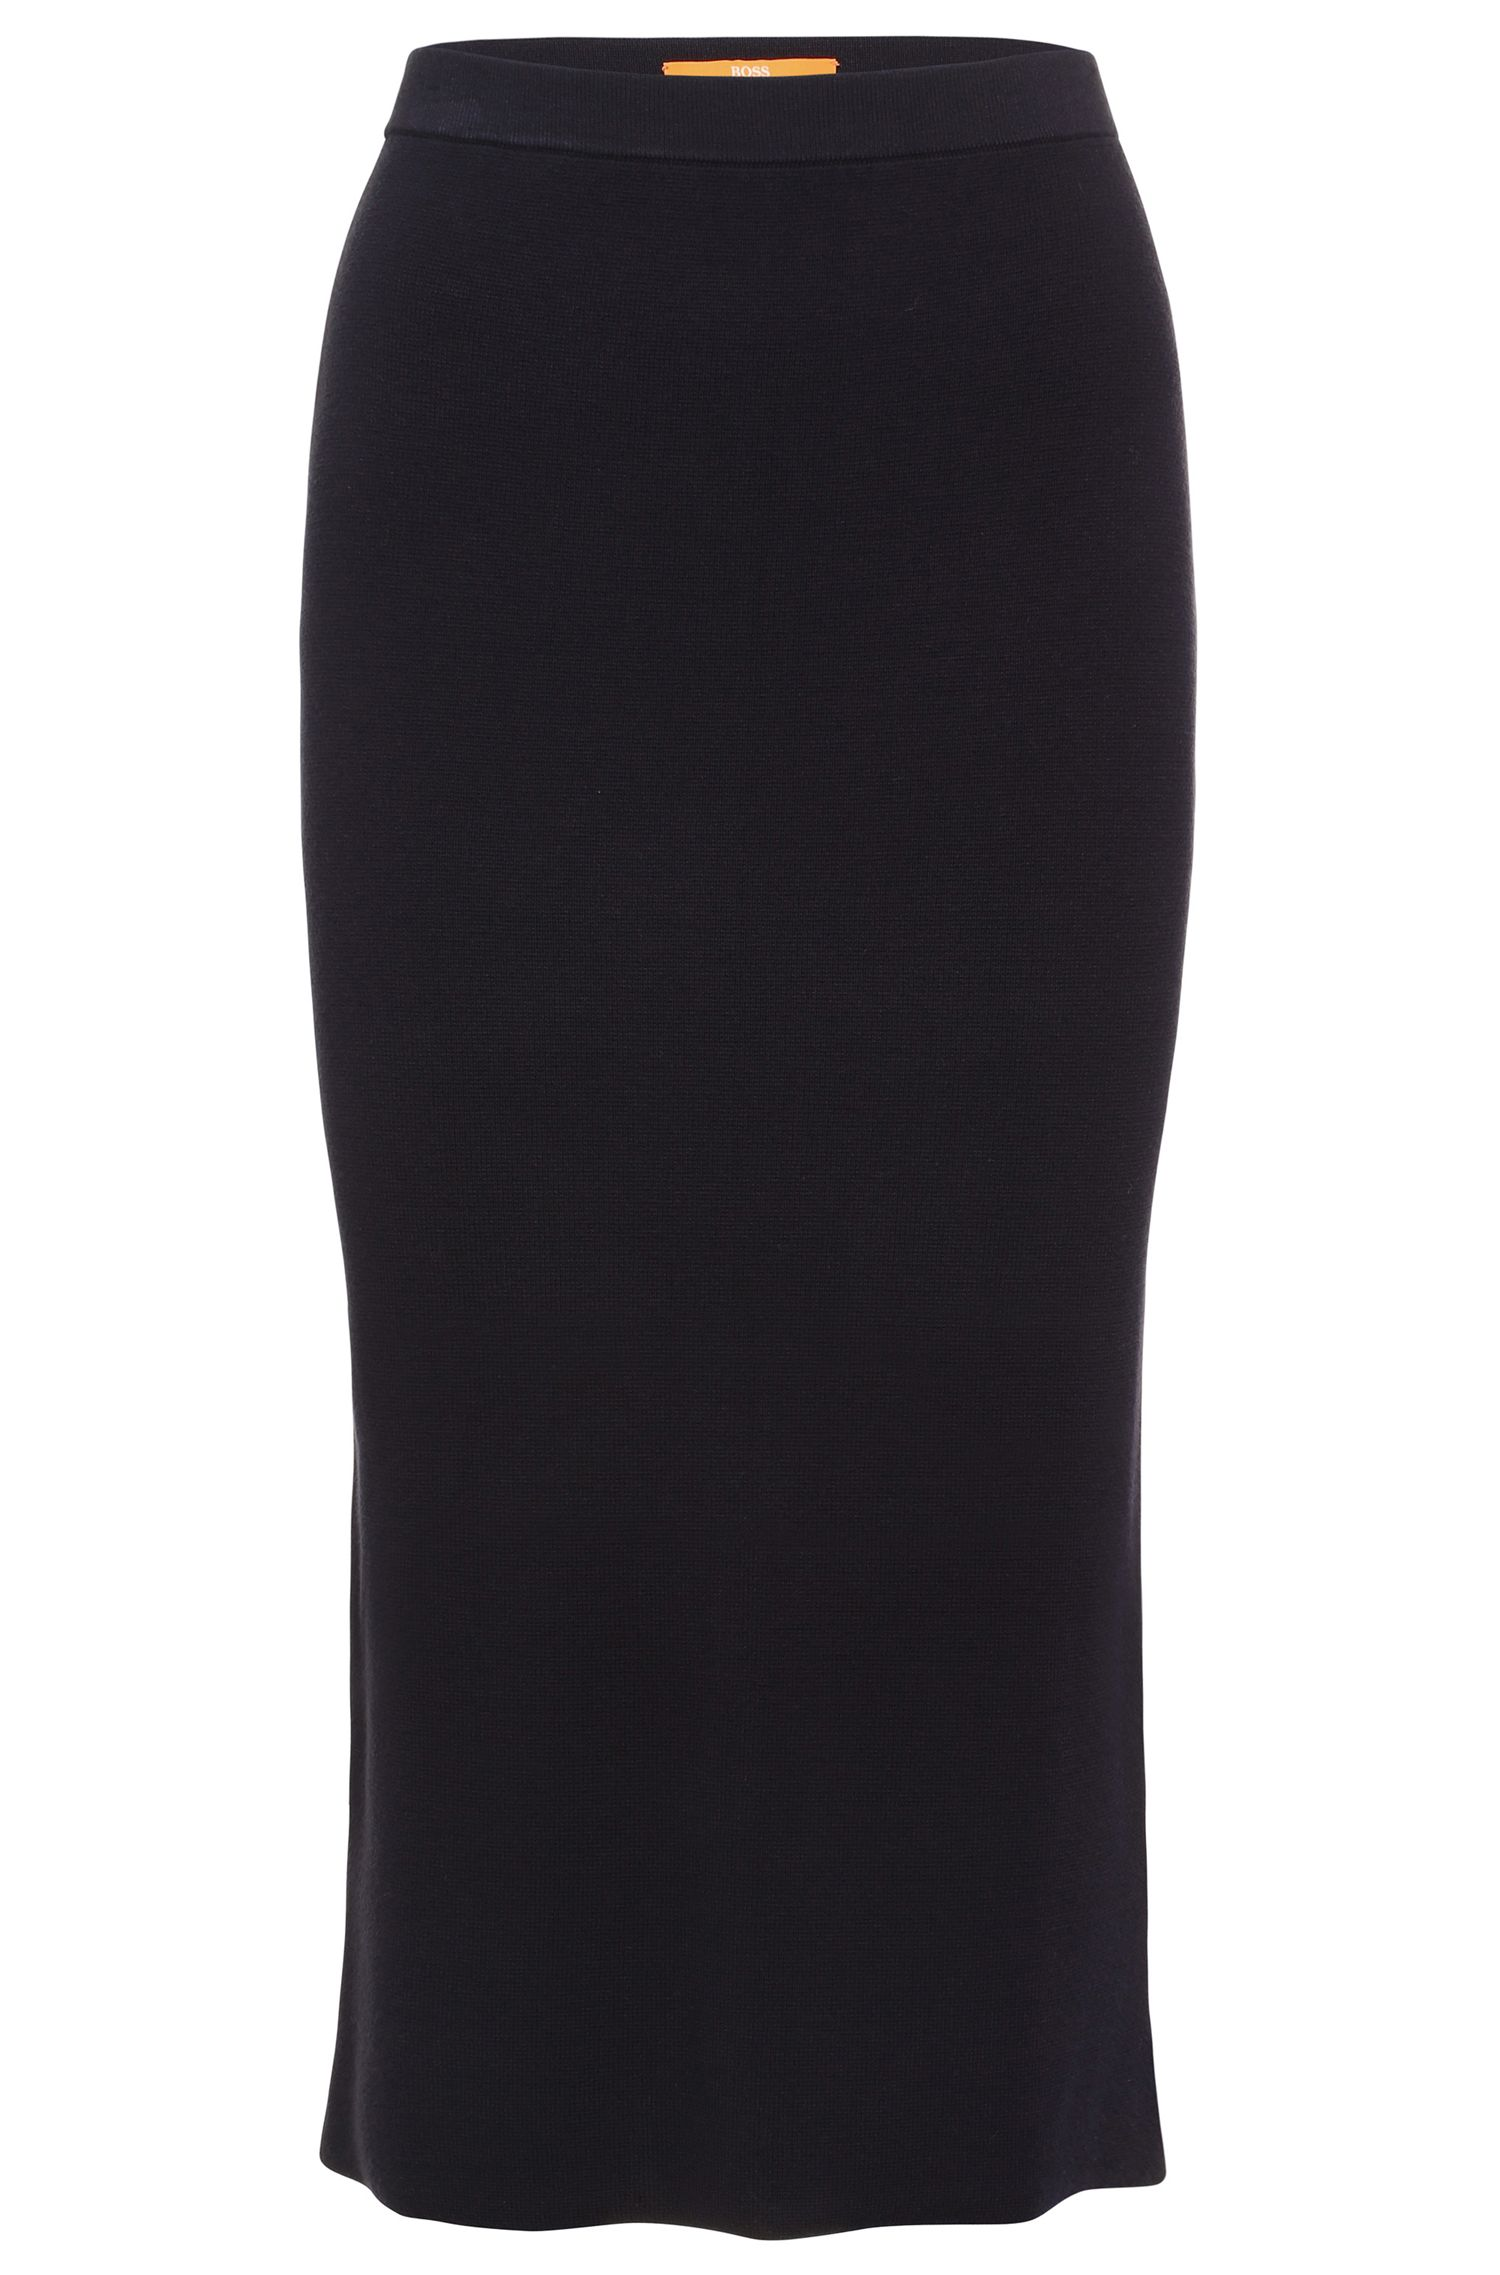 Pencil skirt in textured viscose: 'Ieslirty'